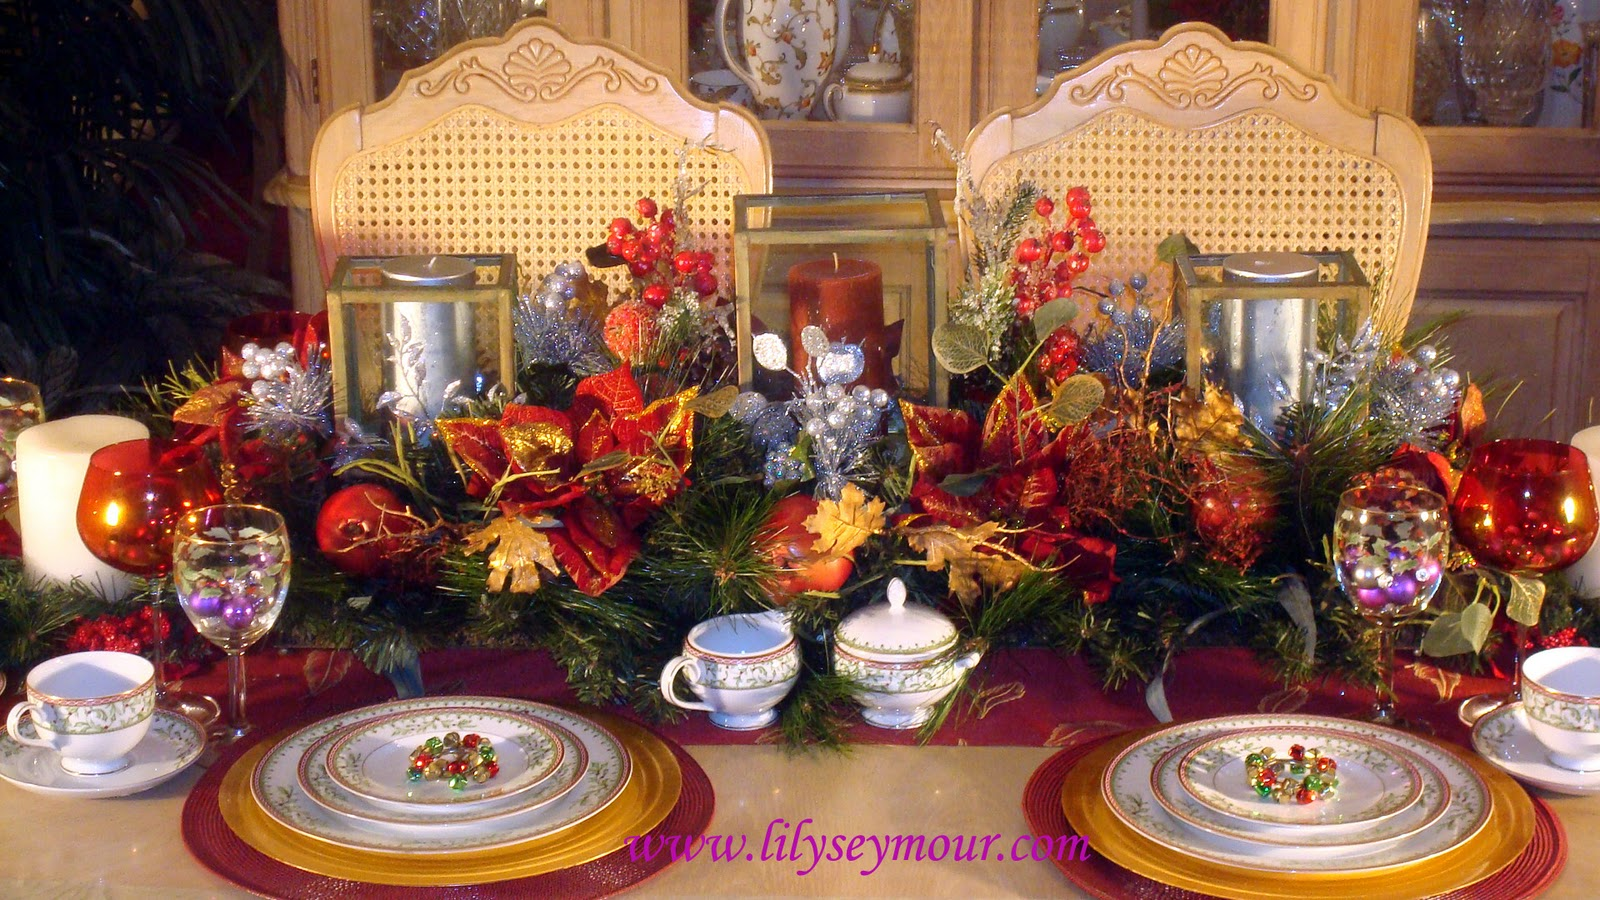 Fun fierce fabulous beauty over 50 holiays dining room for Pier 1 dining room centerpieces